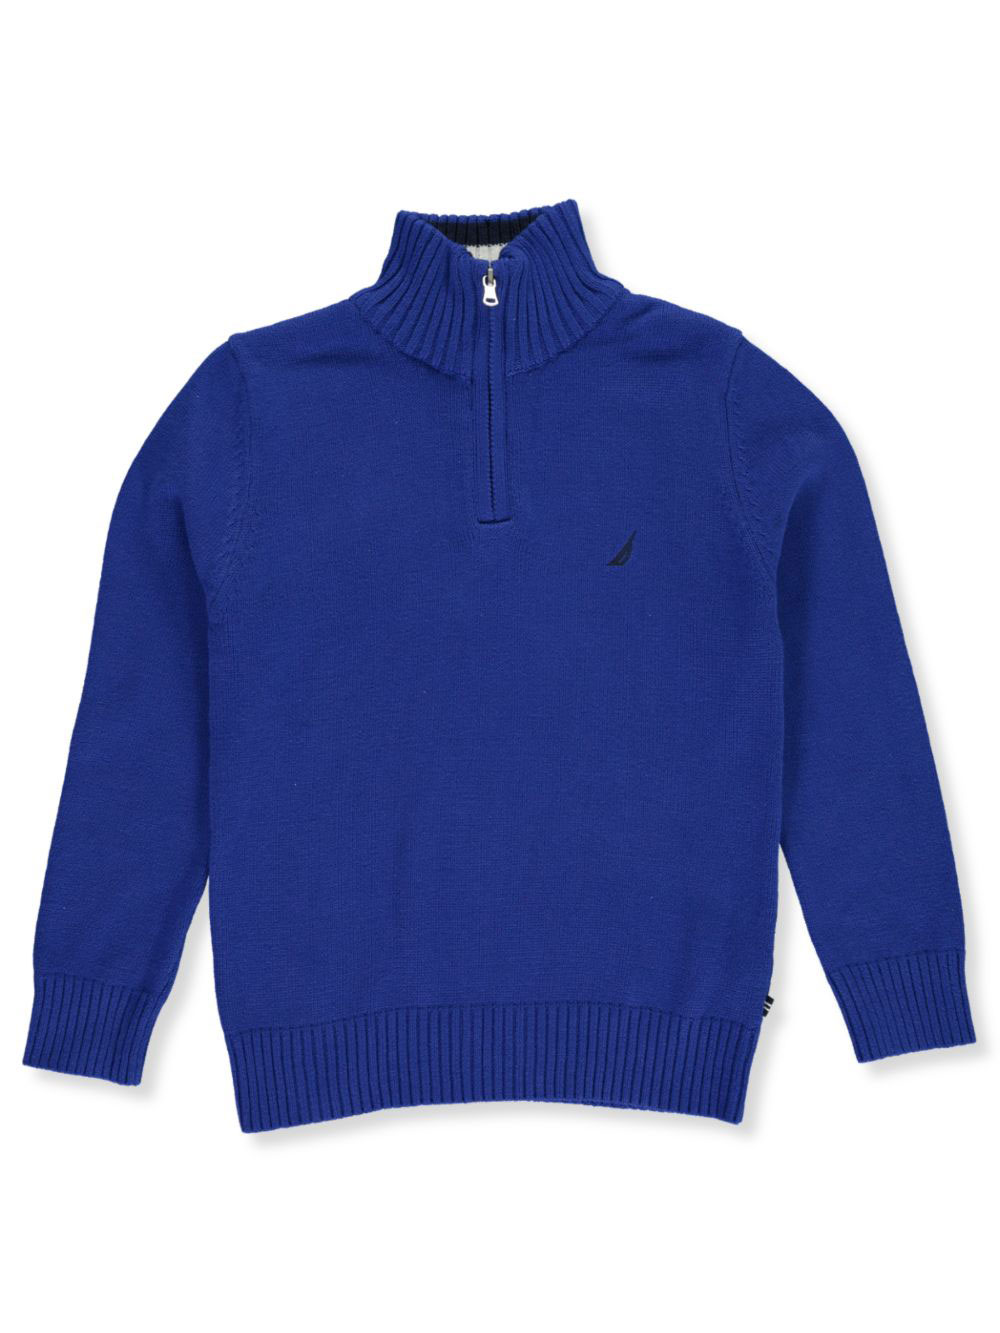 Nautica-Boys-039-Collar-Stripe-Sweater thumbnail 5